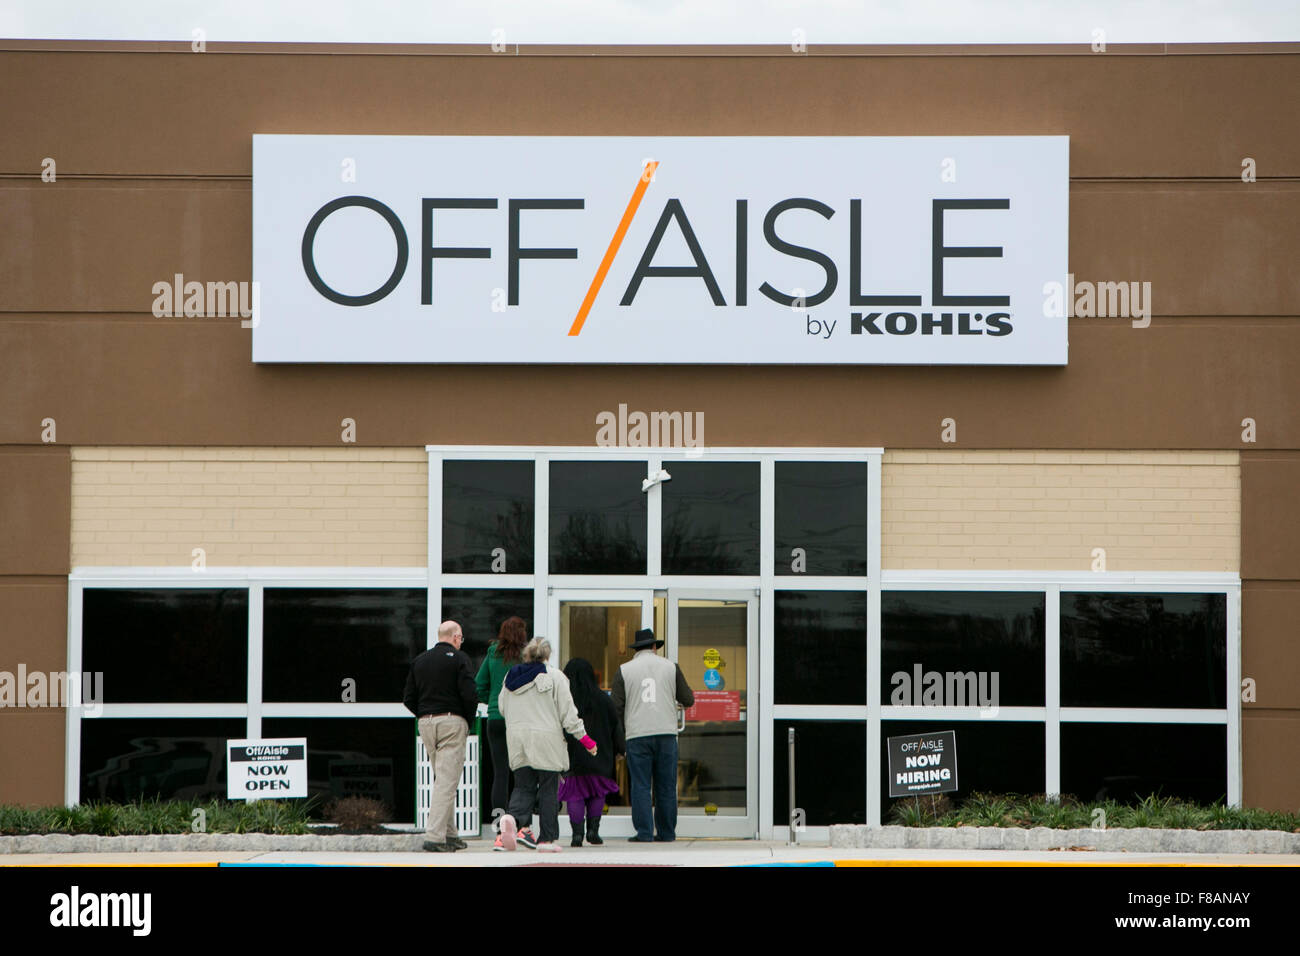 A logo sign outside of an Off-Aisle by Kohl's retail store in Cherry Hill, New Jersey on November 22, 2015. - Stock Image